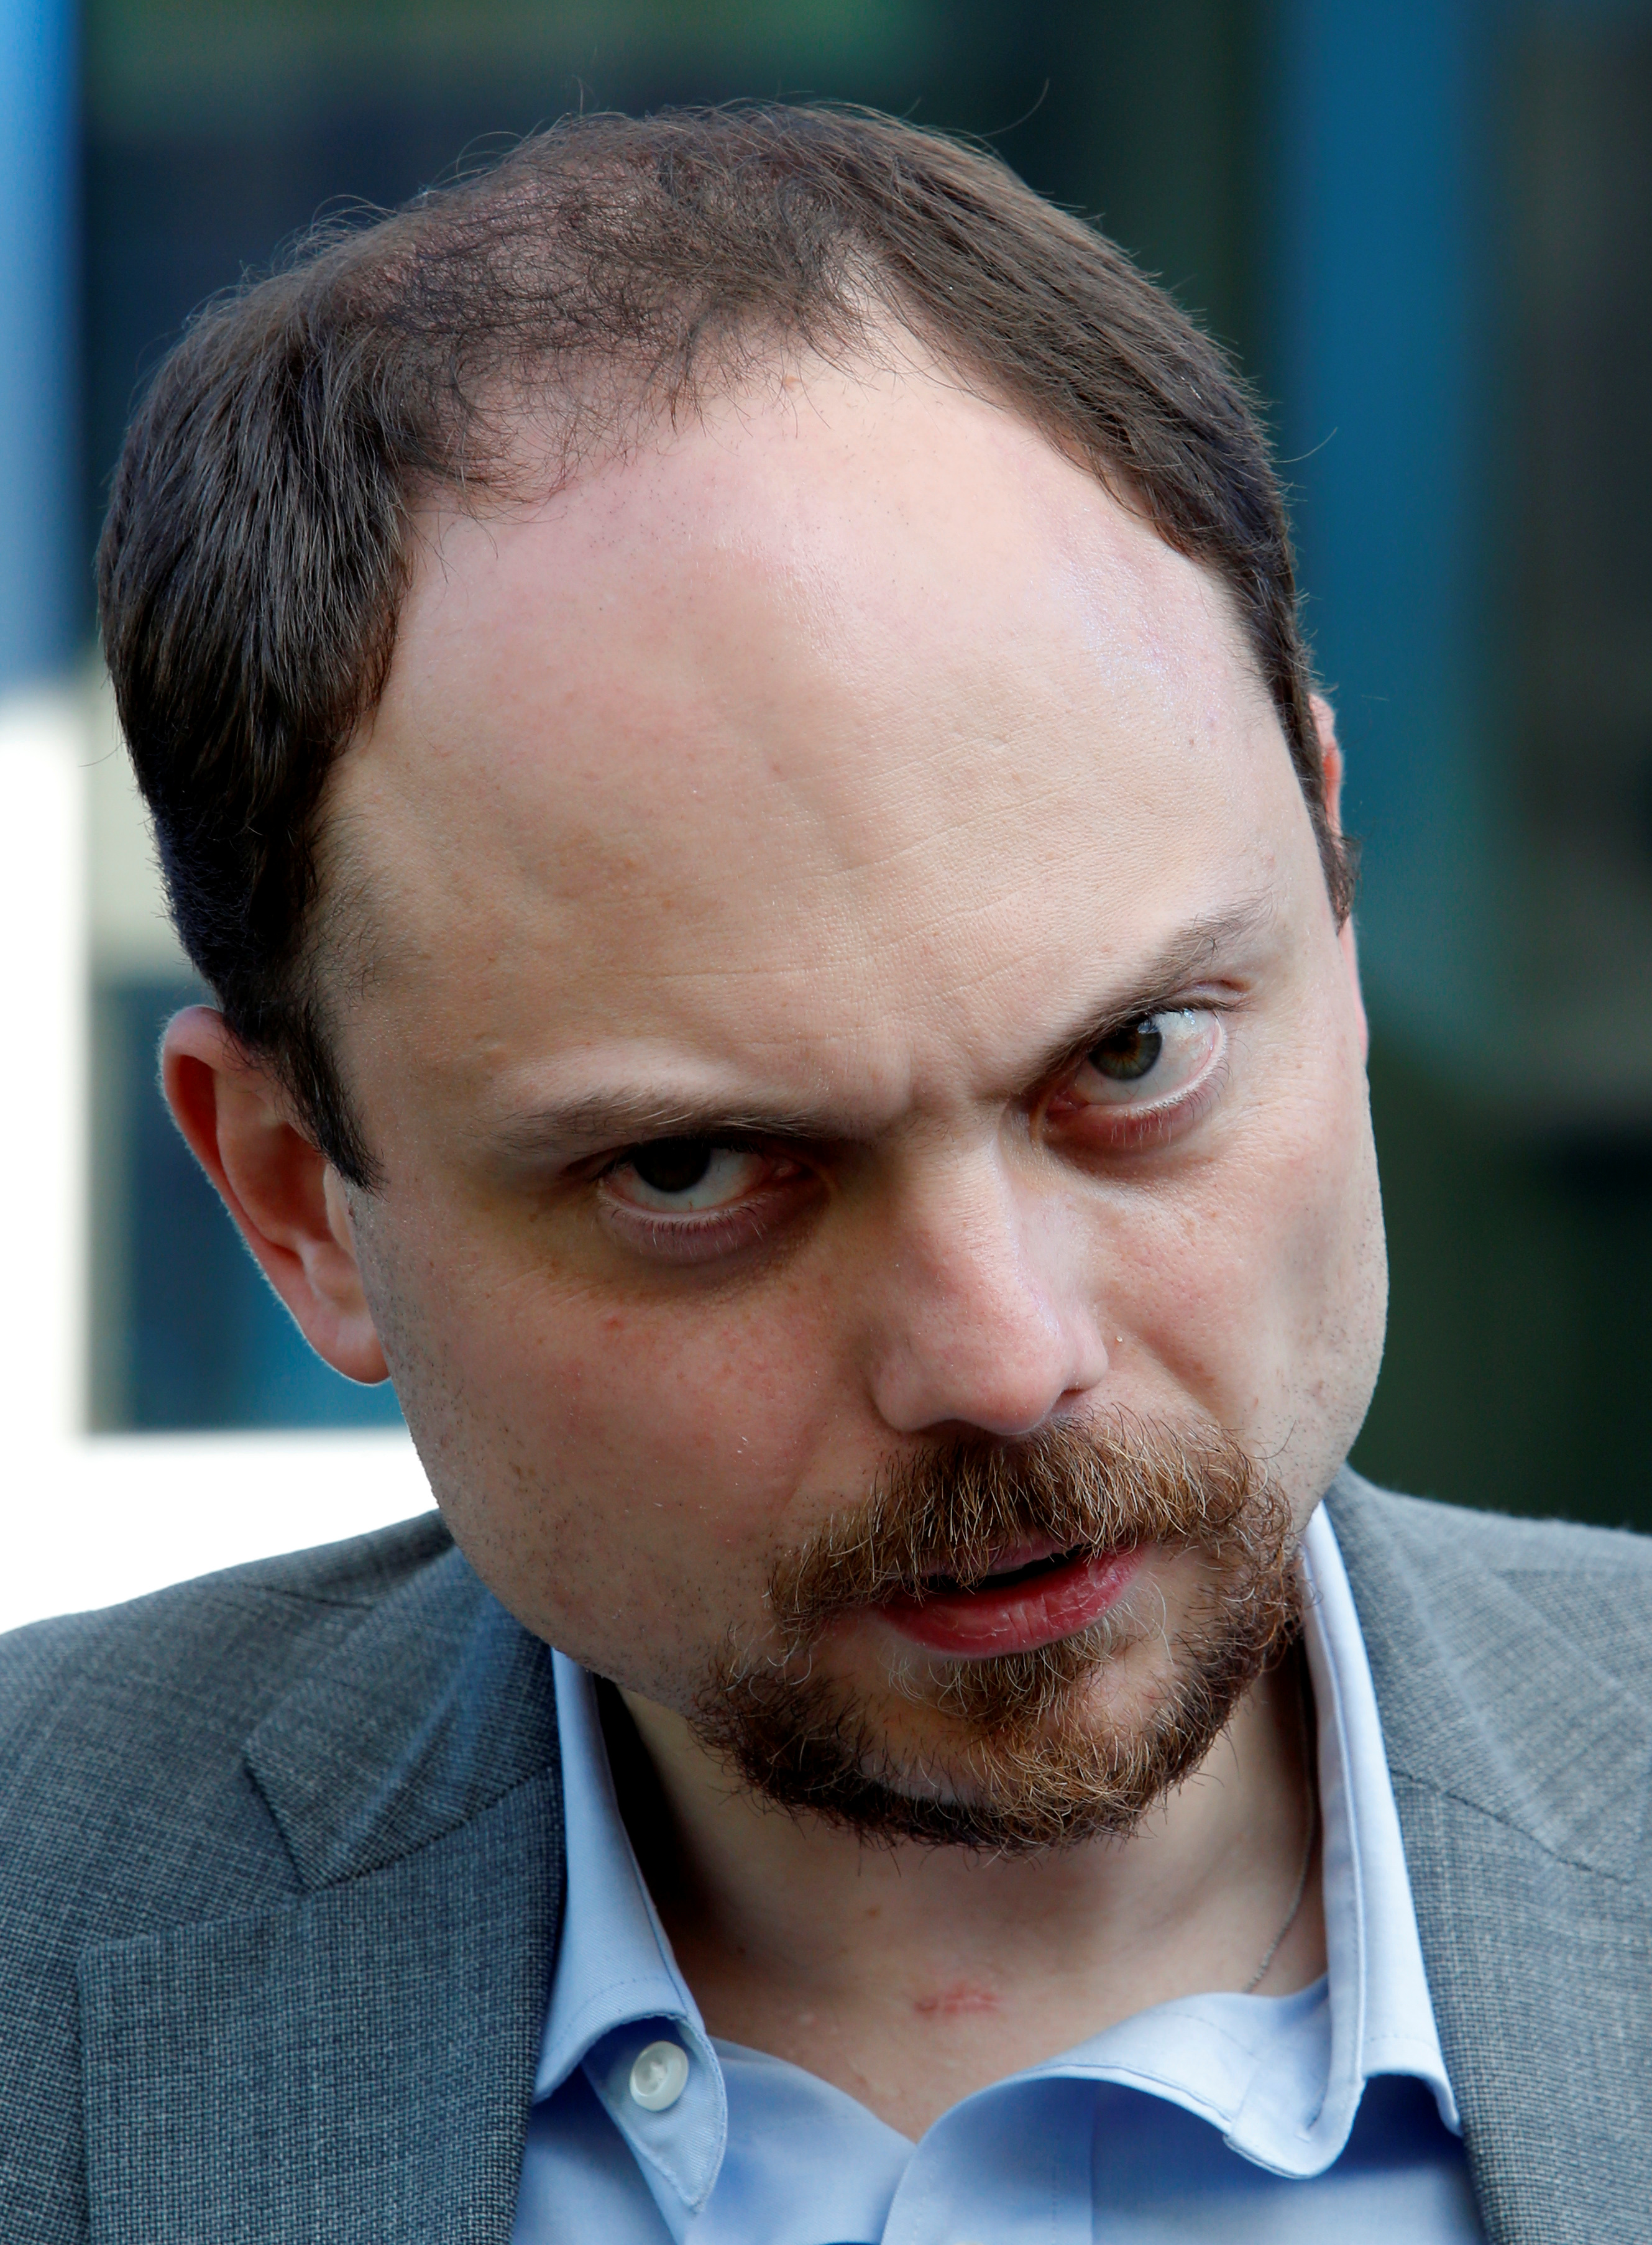 Russian opposition activist Vladimir Kara-Murza following a visit of deputy candidates to the State Duma in Moscow on June 1, 2016